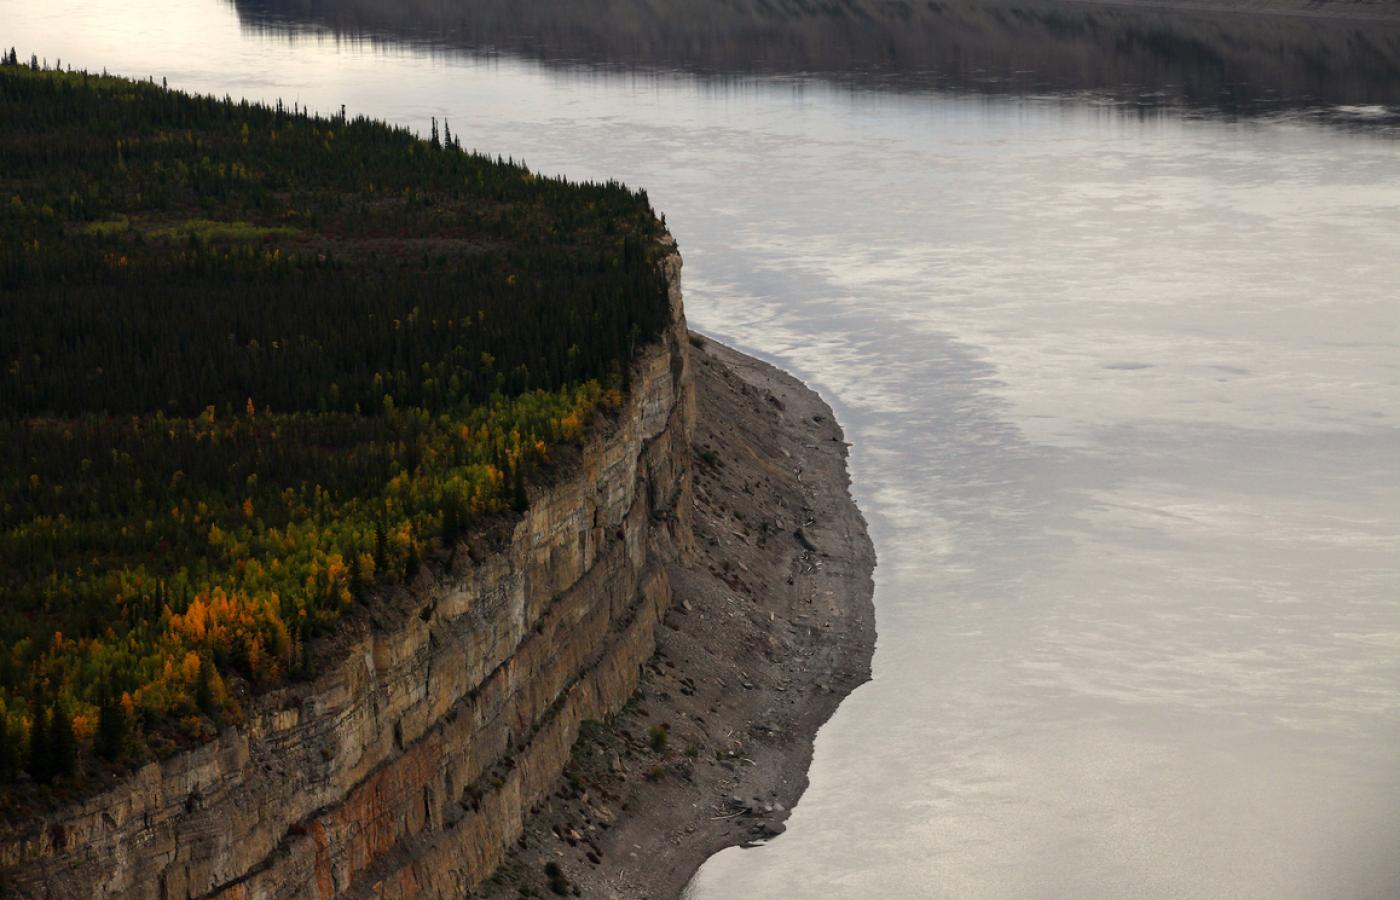 The Ramparts are a major feature of the Mackenzie River, near Fort Good Hope, in Canada's Northwest Territories